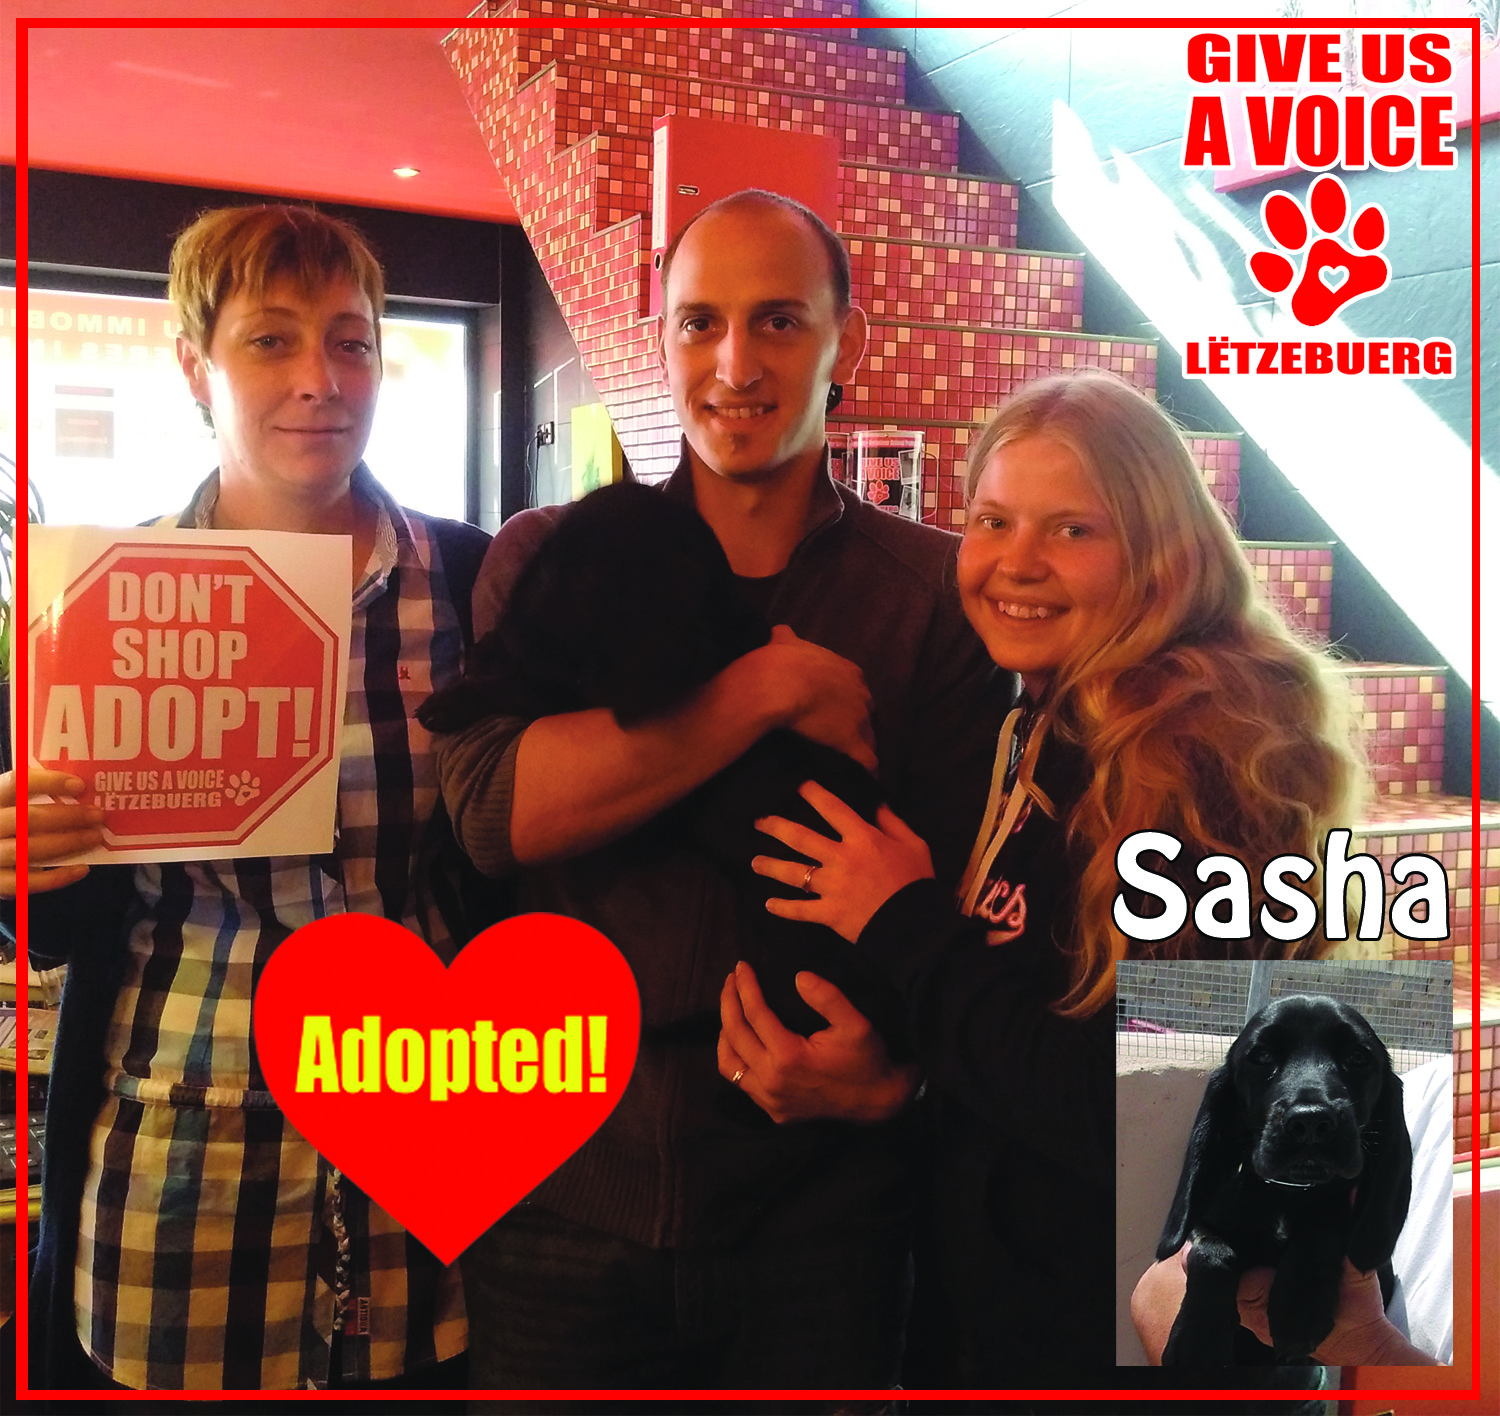 Sasha Adopted copy